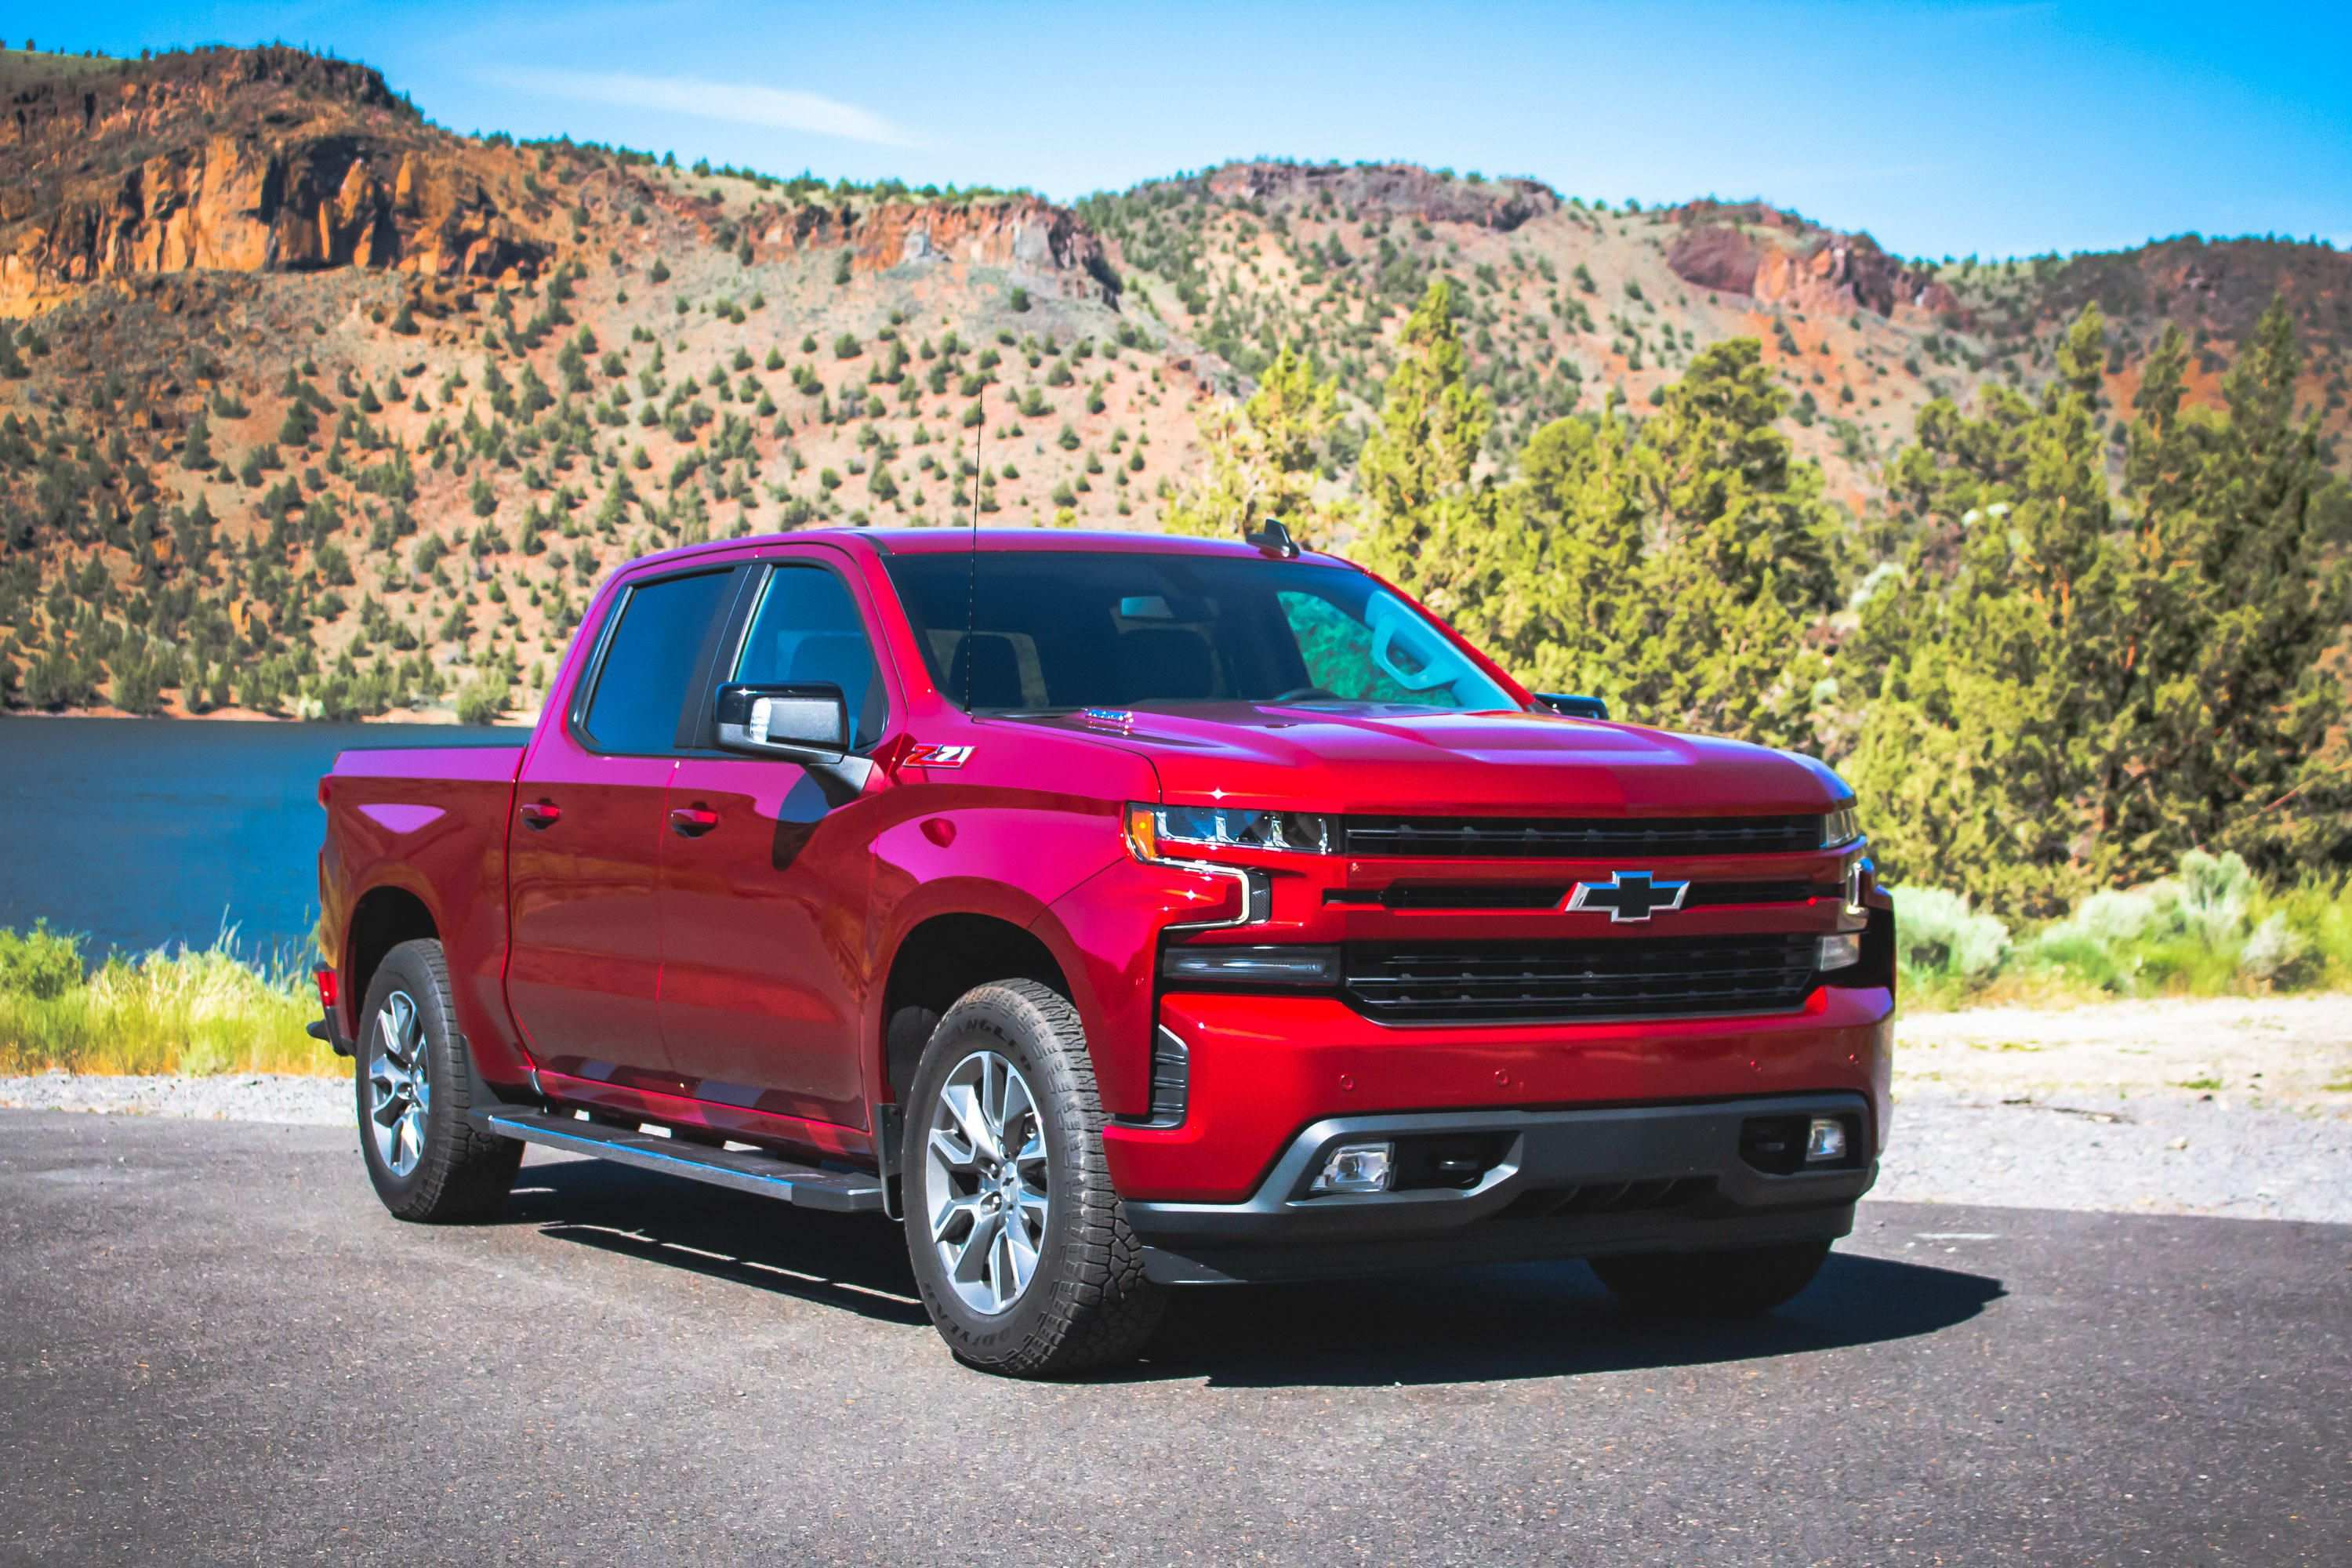 15 New Chevrolet Truck 2020 Performance and New Engine for Chevrolet Truck 2020